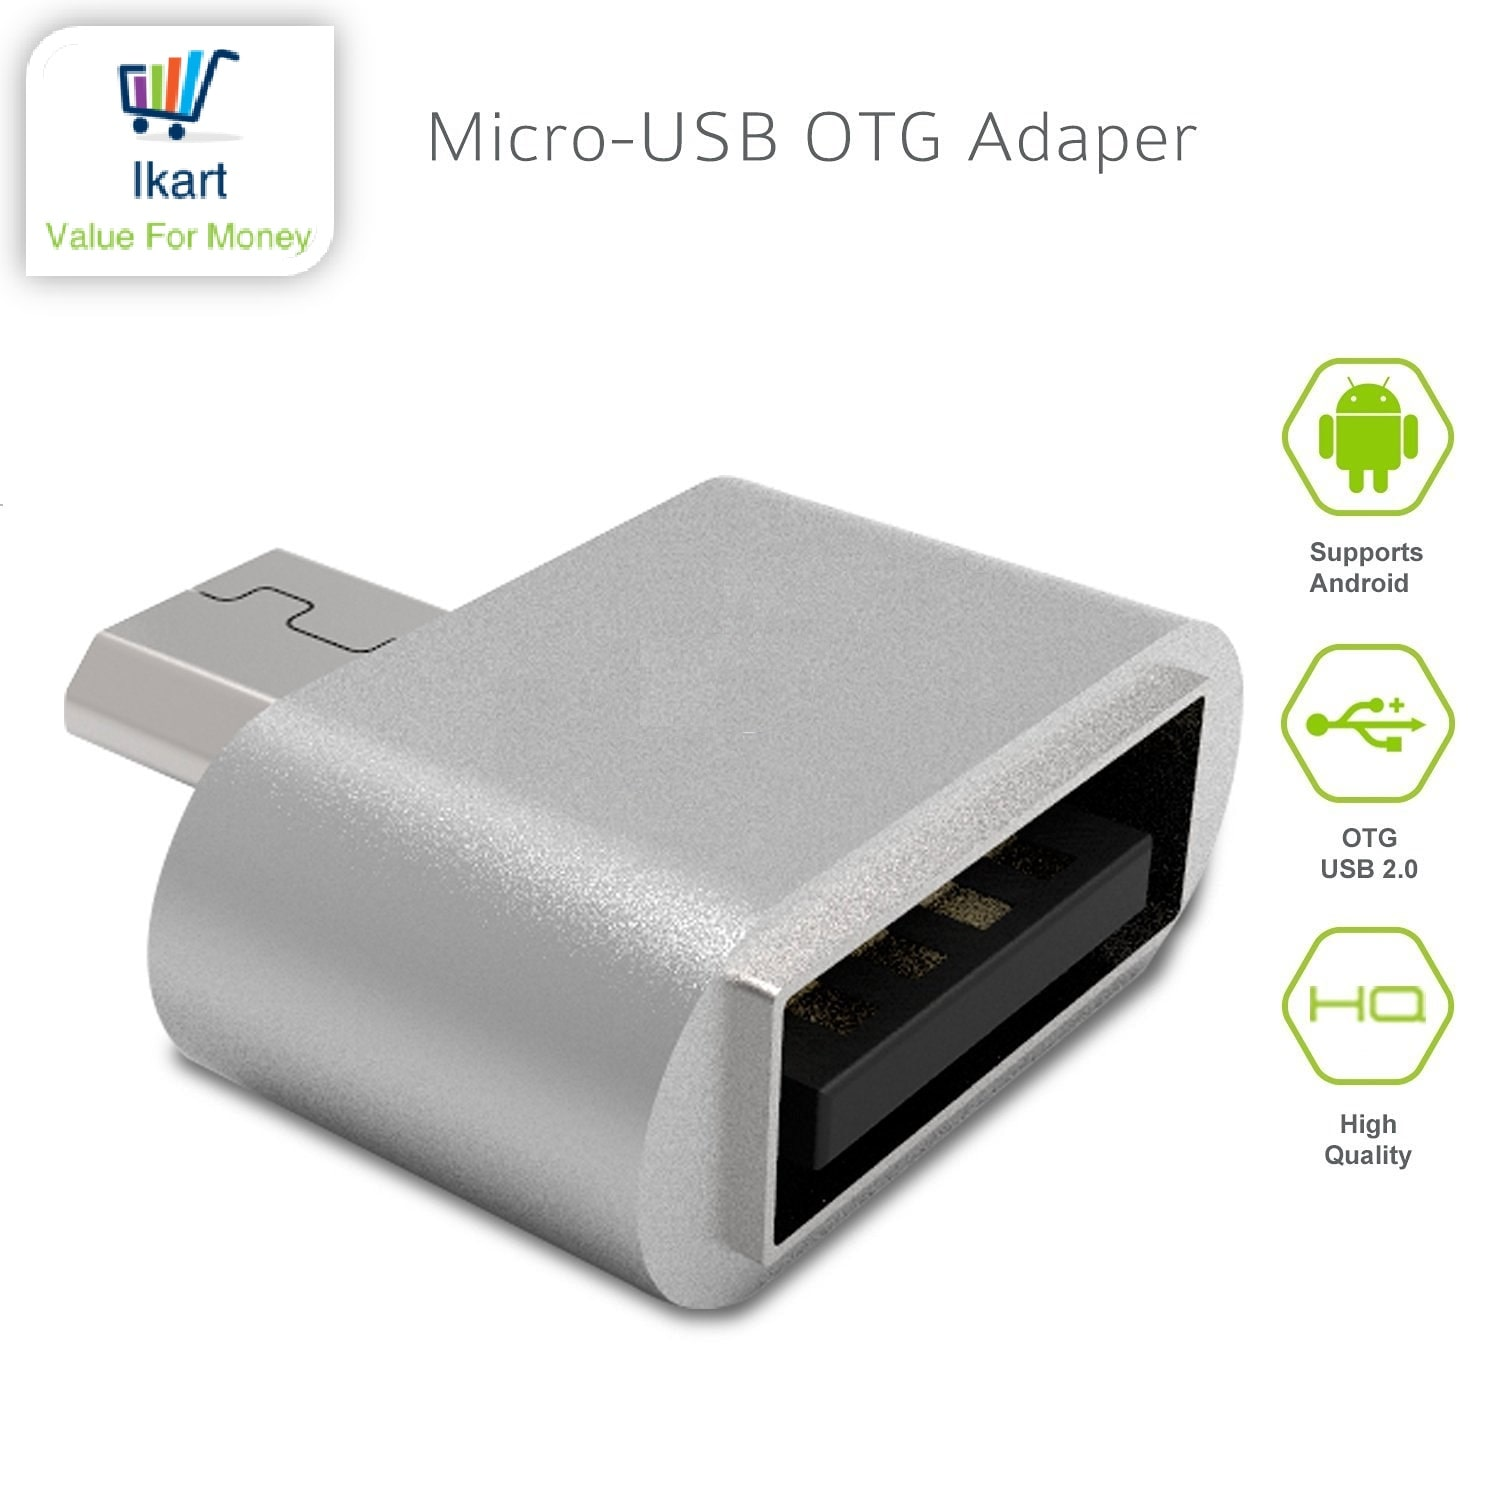 Micro USB To USB A Female OTG Adapter For OTG Supported Smartphones IKART by Dreamshop